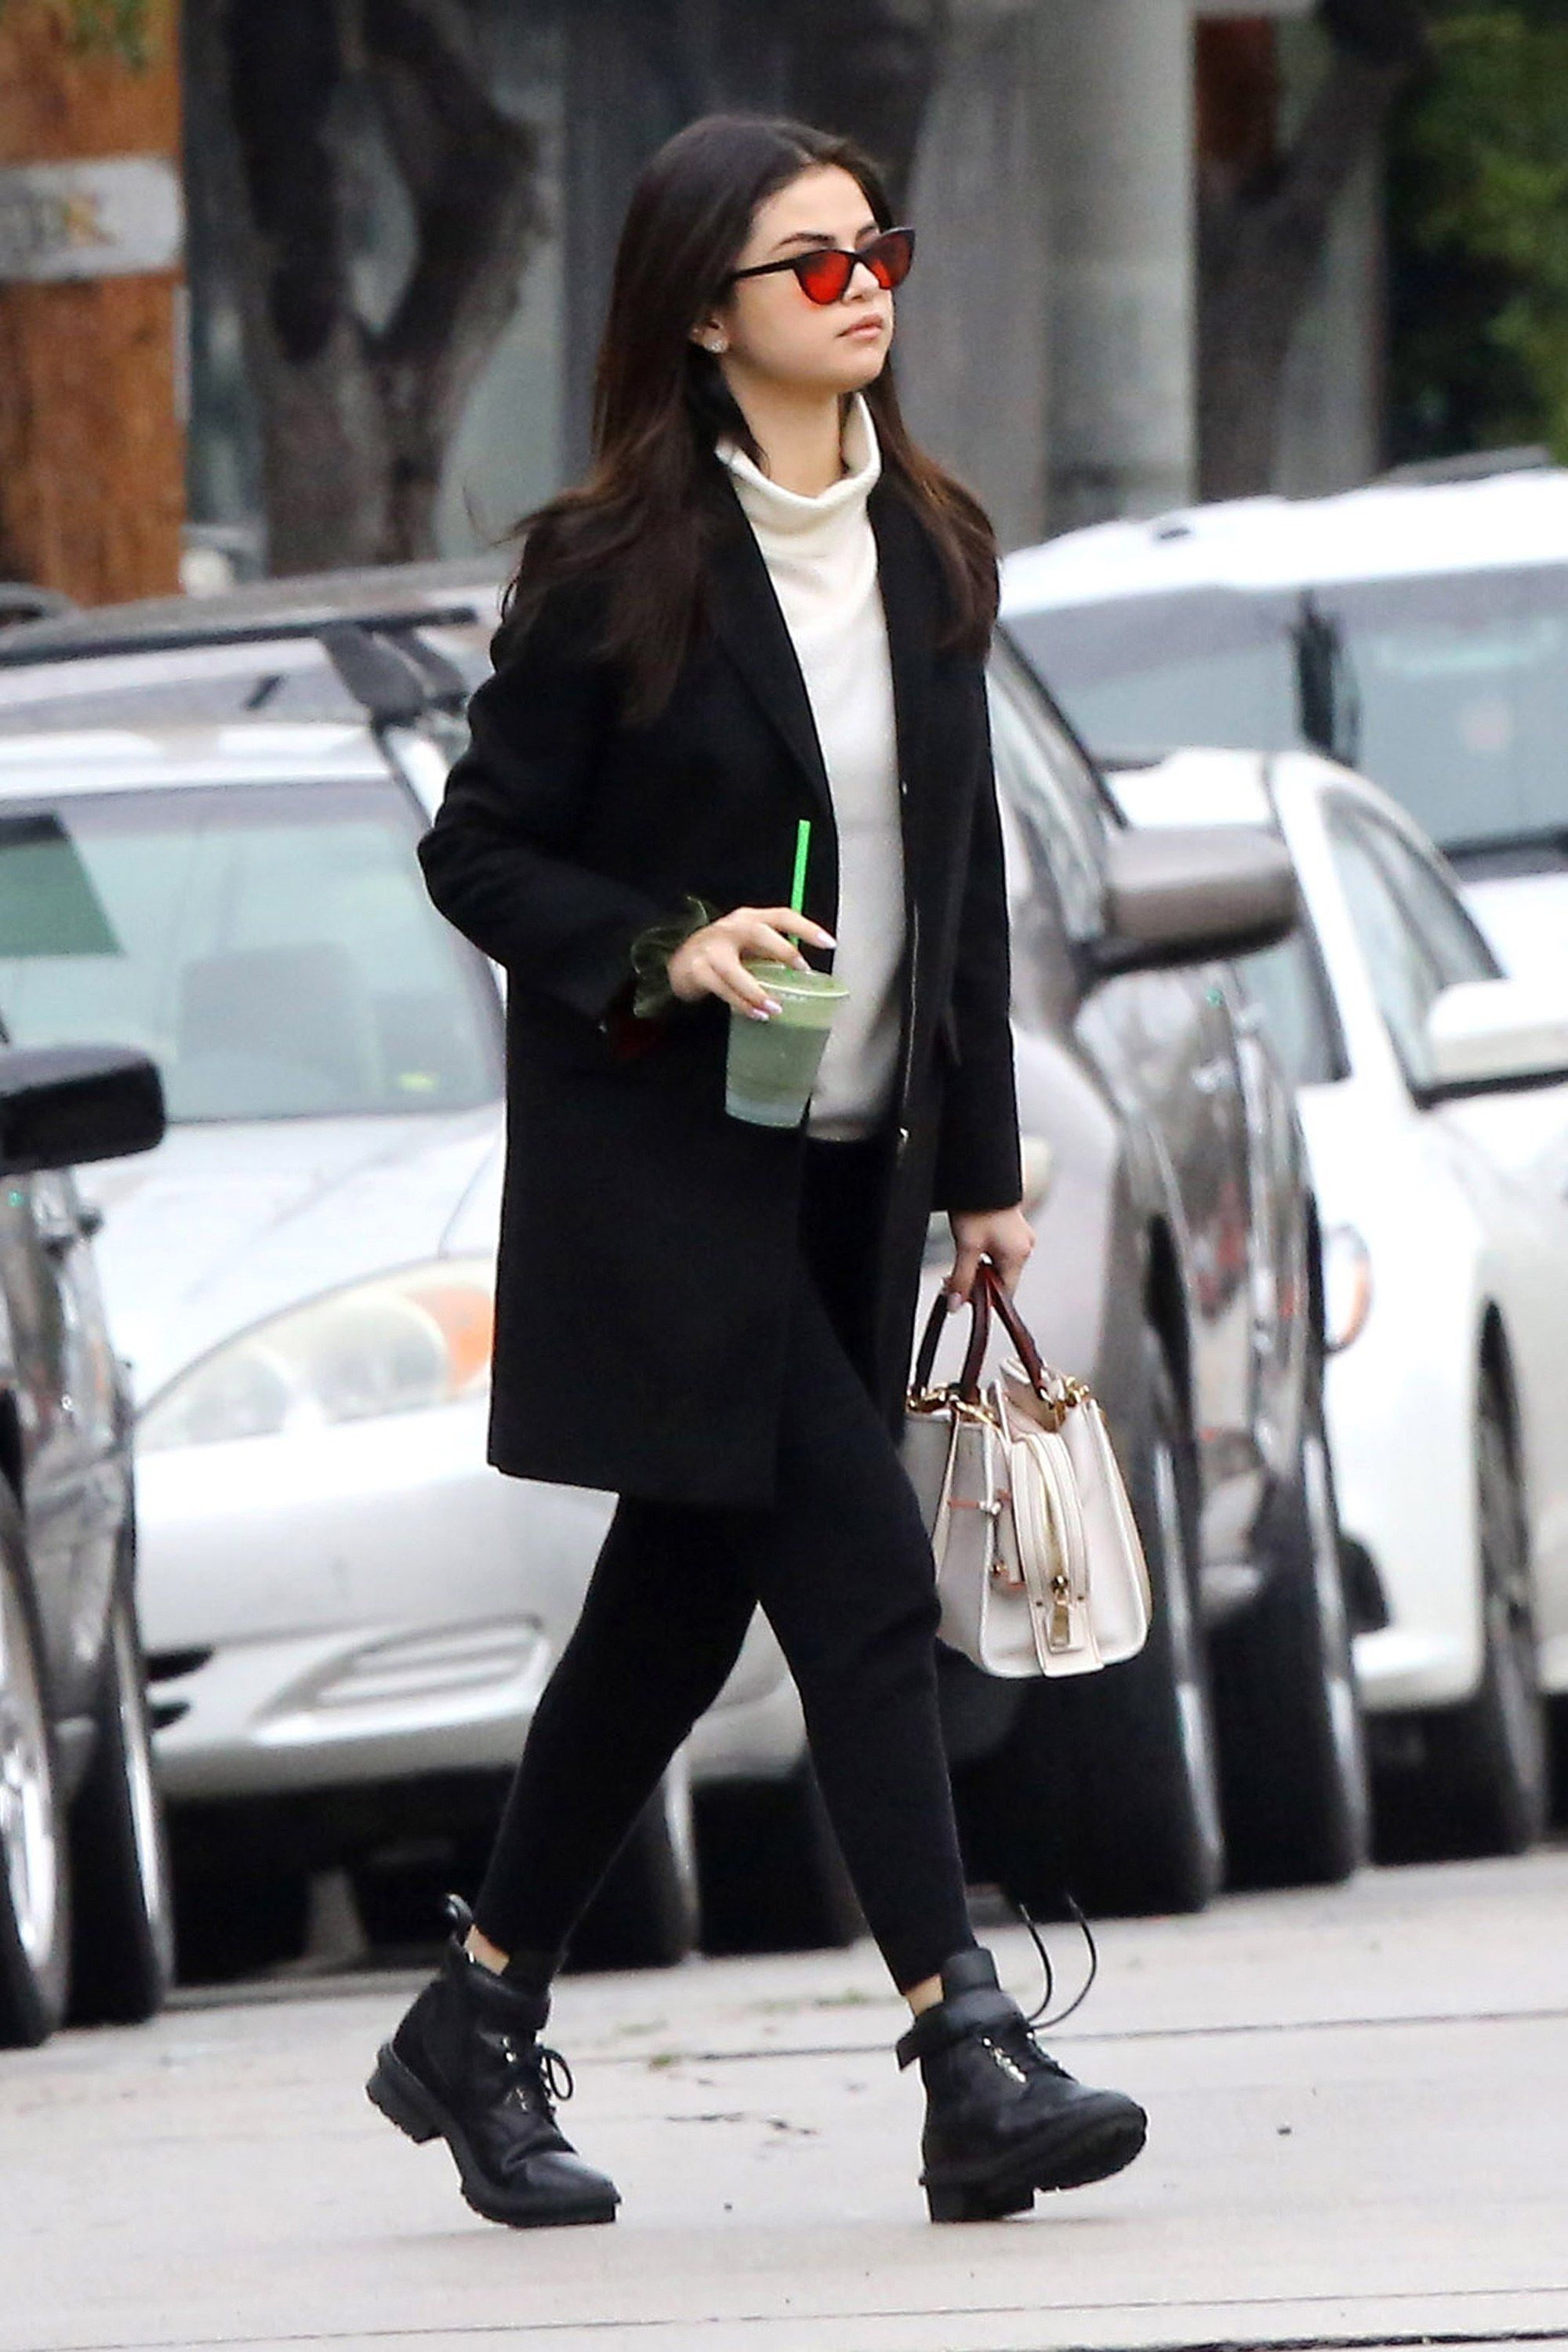 db2c6e4fc4c Selena Gomez Is Stepping Up Her Street Style Accessories Game ...